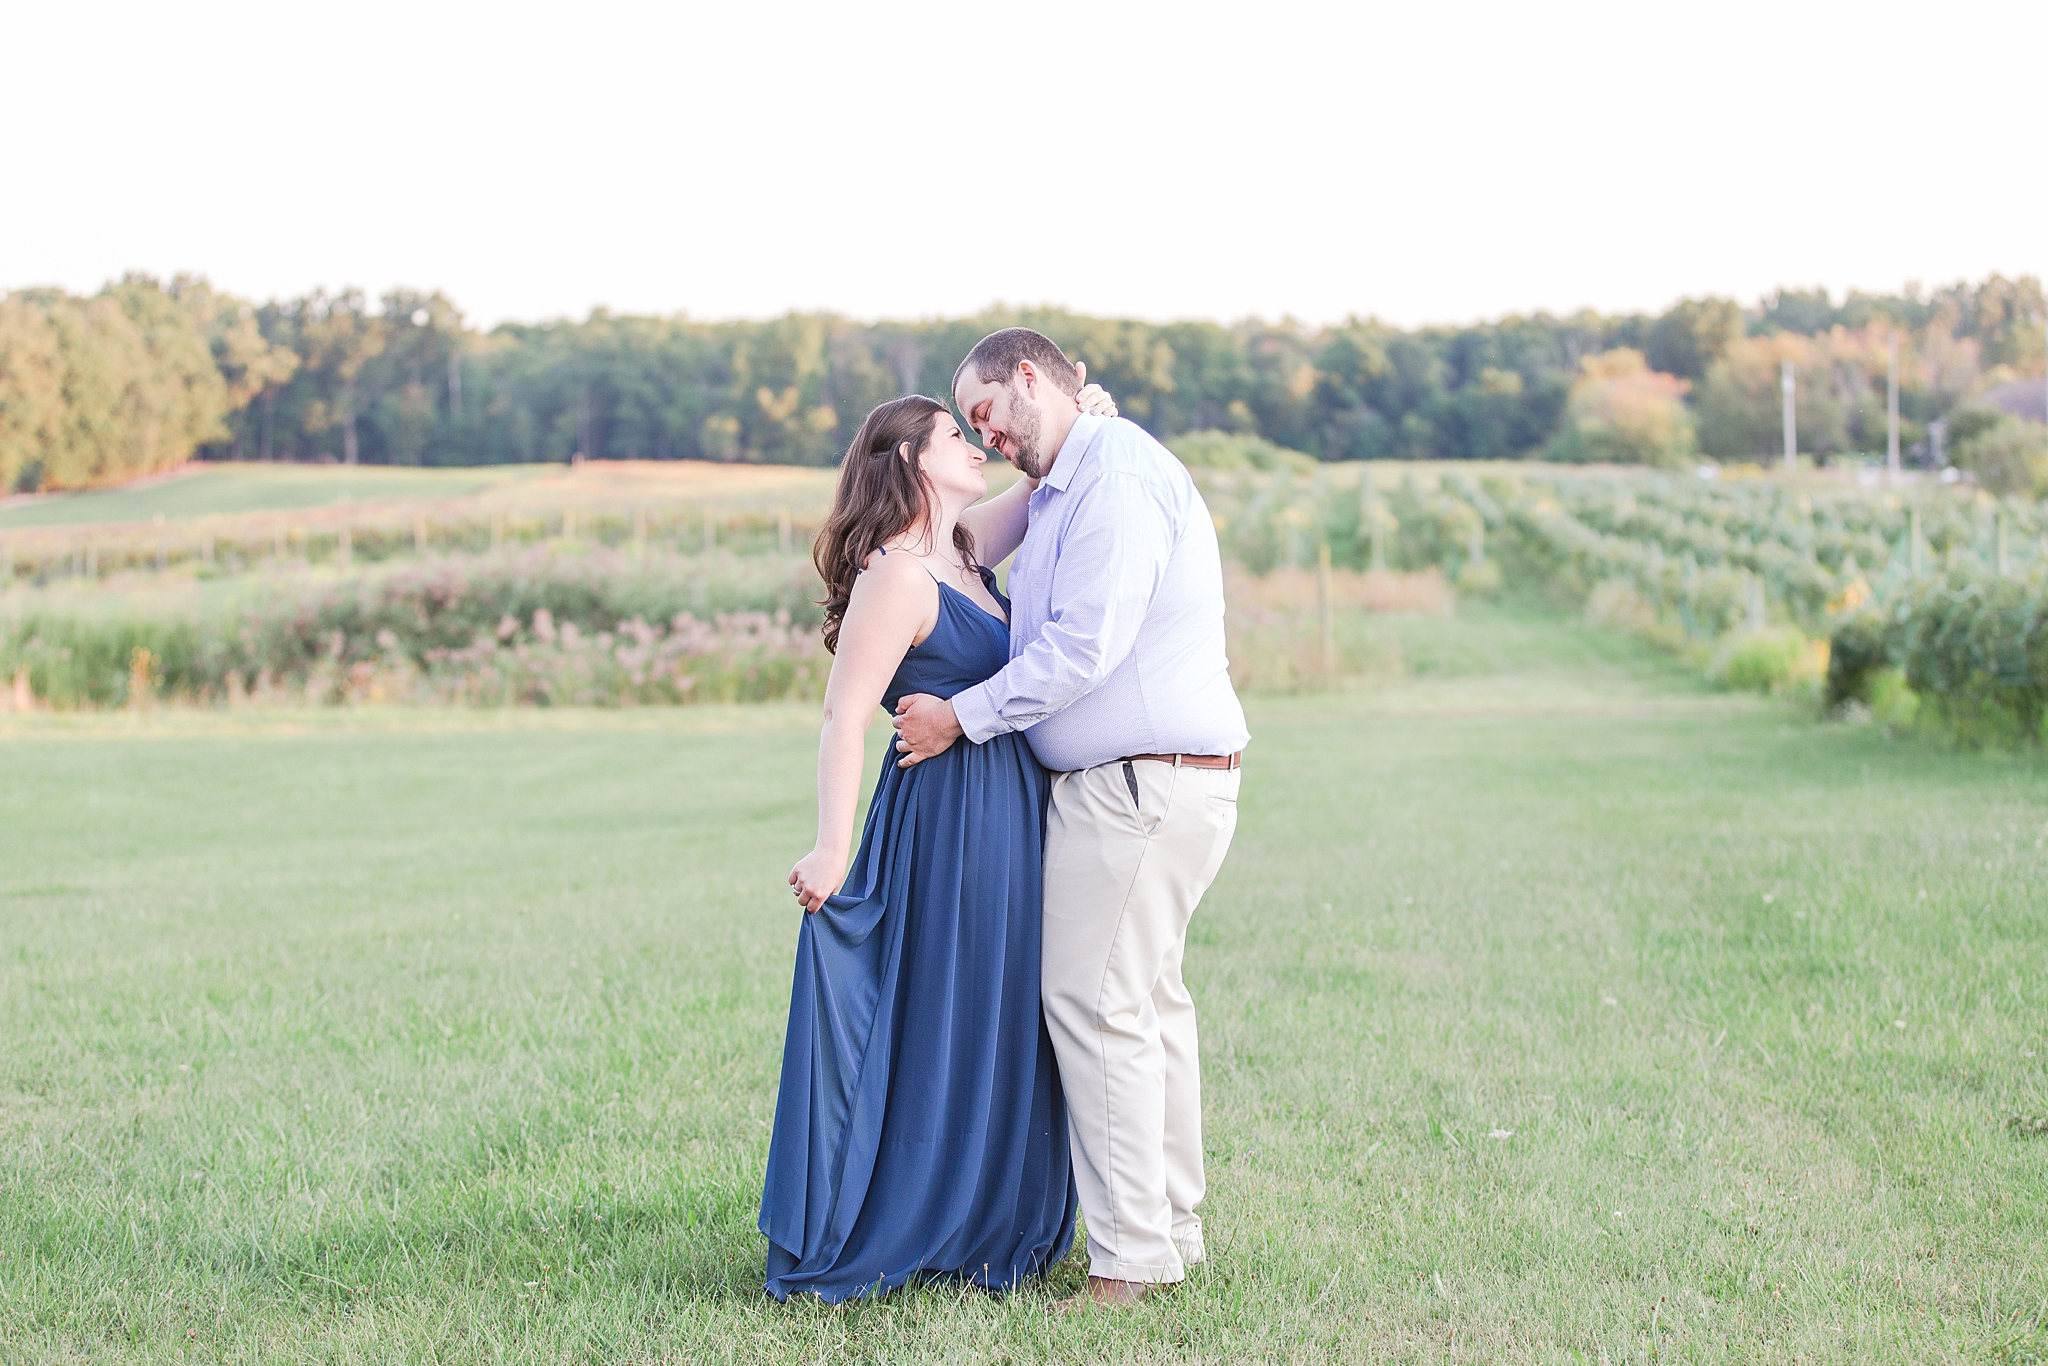 classic-vineyard-engagement-photography-in-lansing-mi-by-courtney-carolyn-photography_0004.jpg